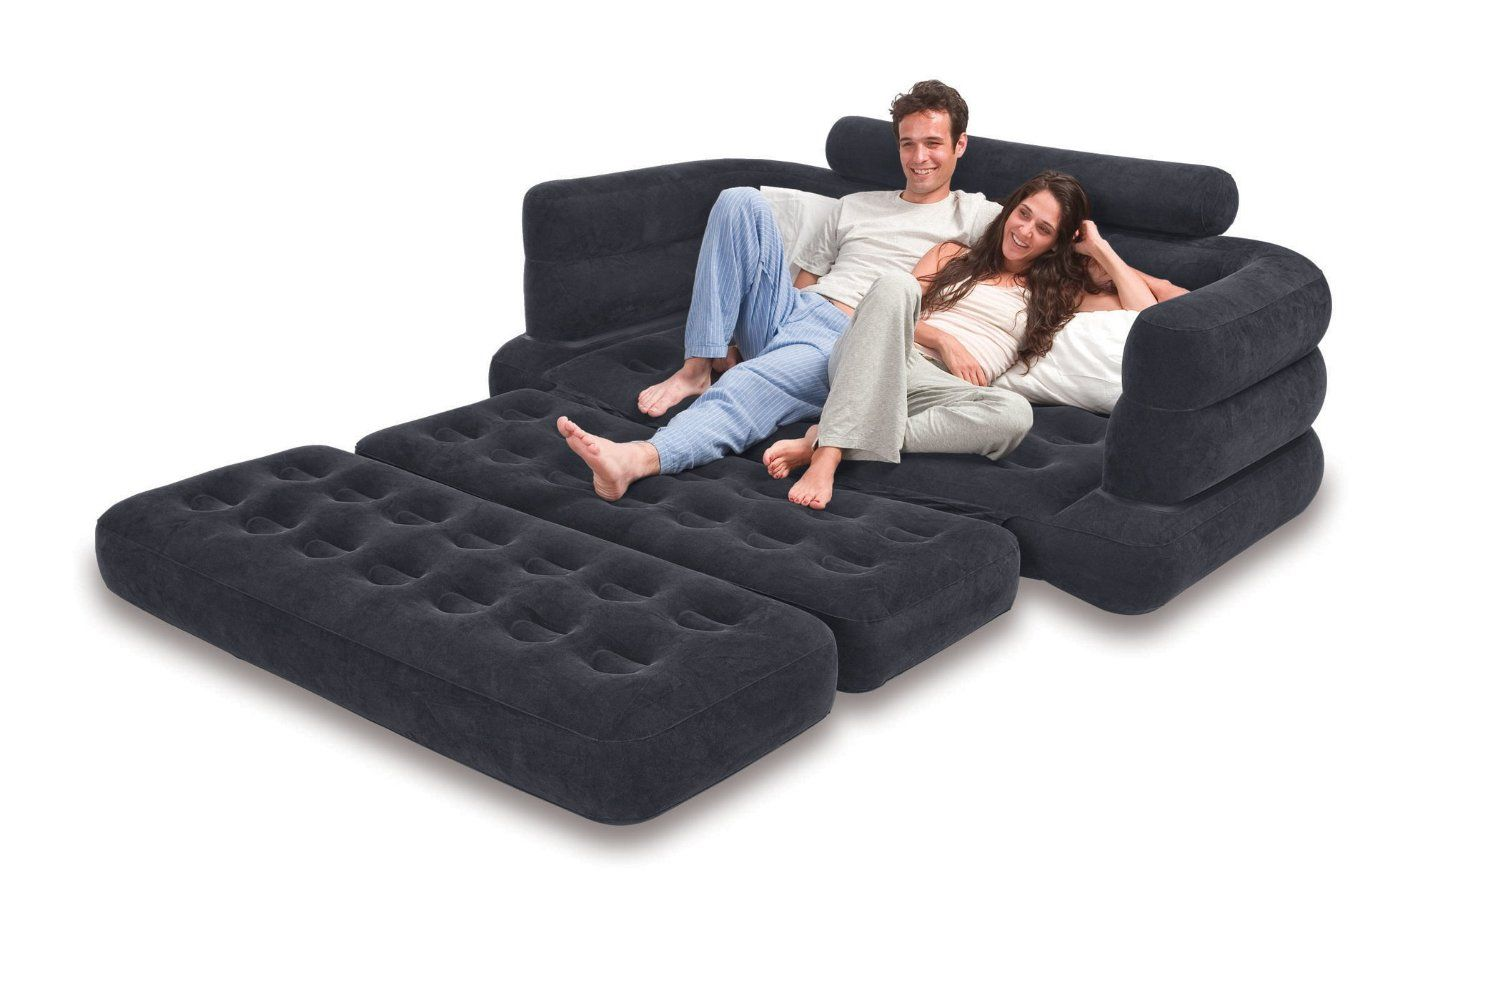 Inflatable Pull Out Couch Inflatable Couch Inflatable Sofa Mattress Sofa